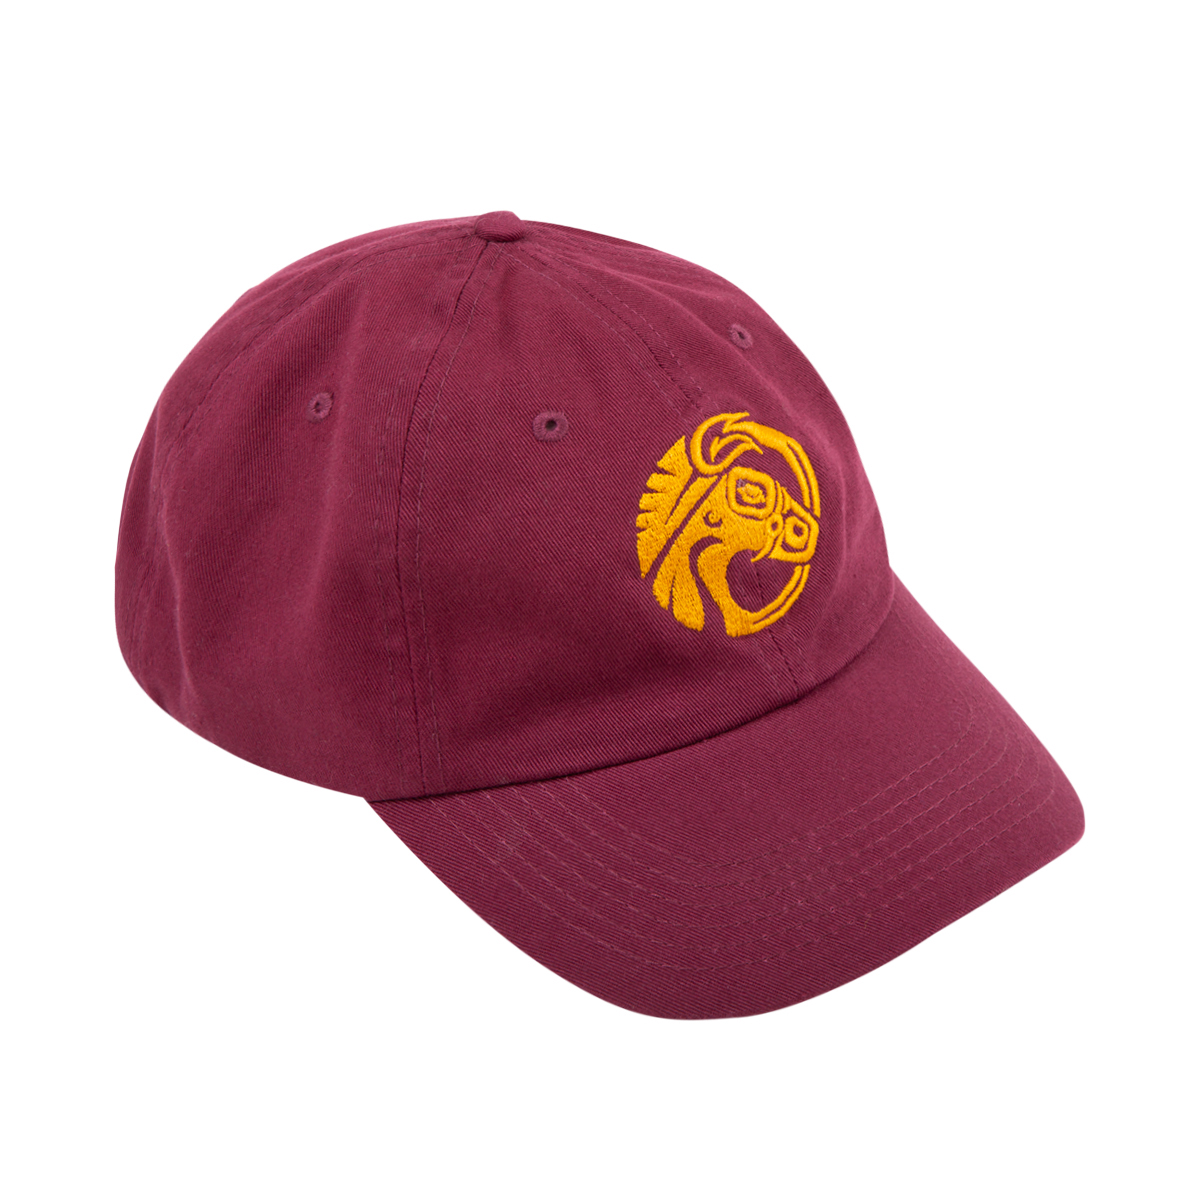 MAROON DAD HAT WITH GOLD MULEHEAD